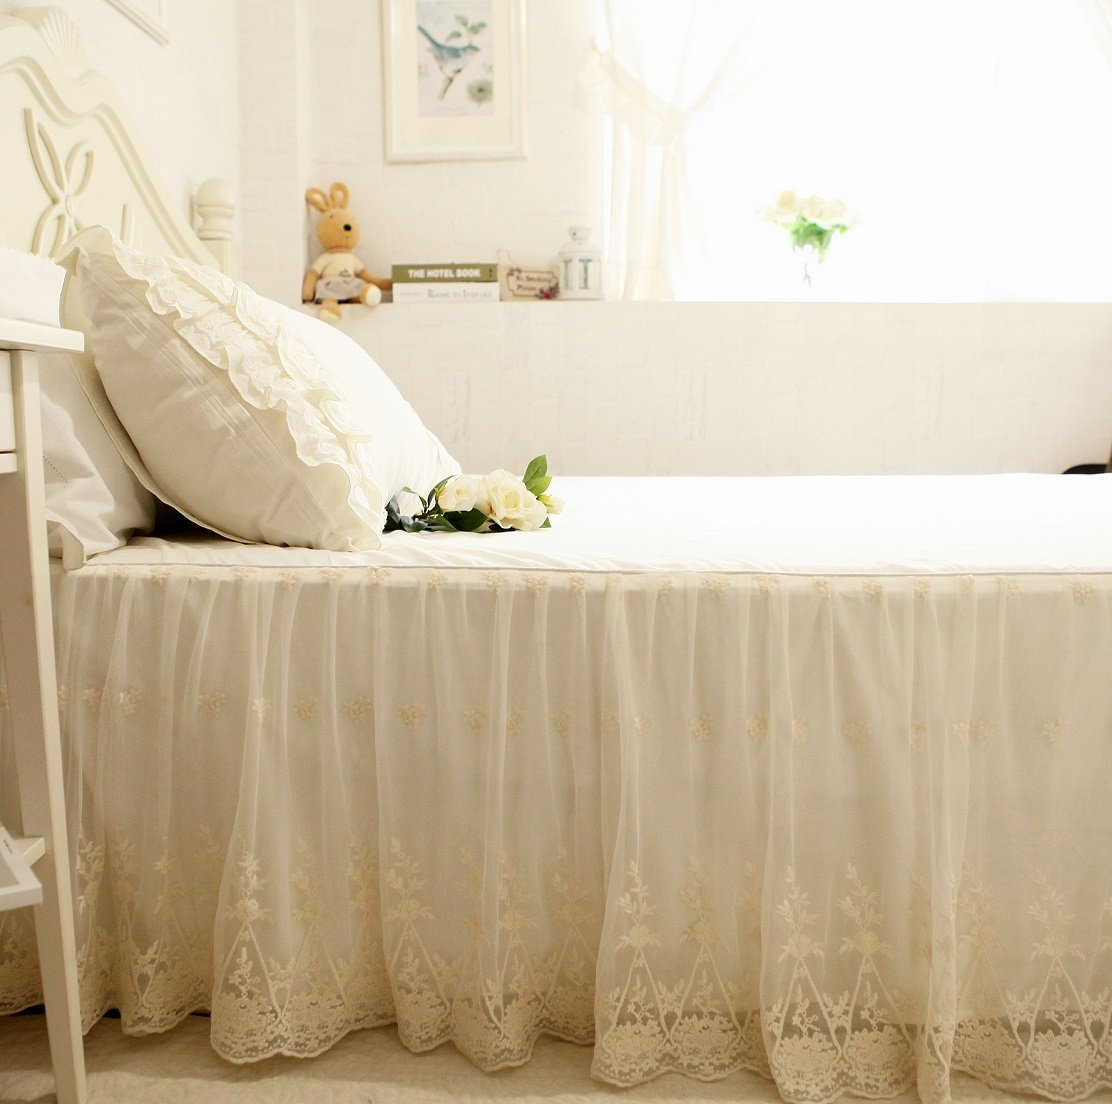 Brandream Romantic White Lace Bed Skirts Korean Bed Skirt Cotton Cal King Size by Brandream